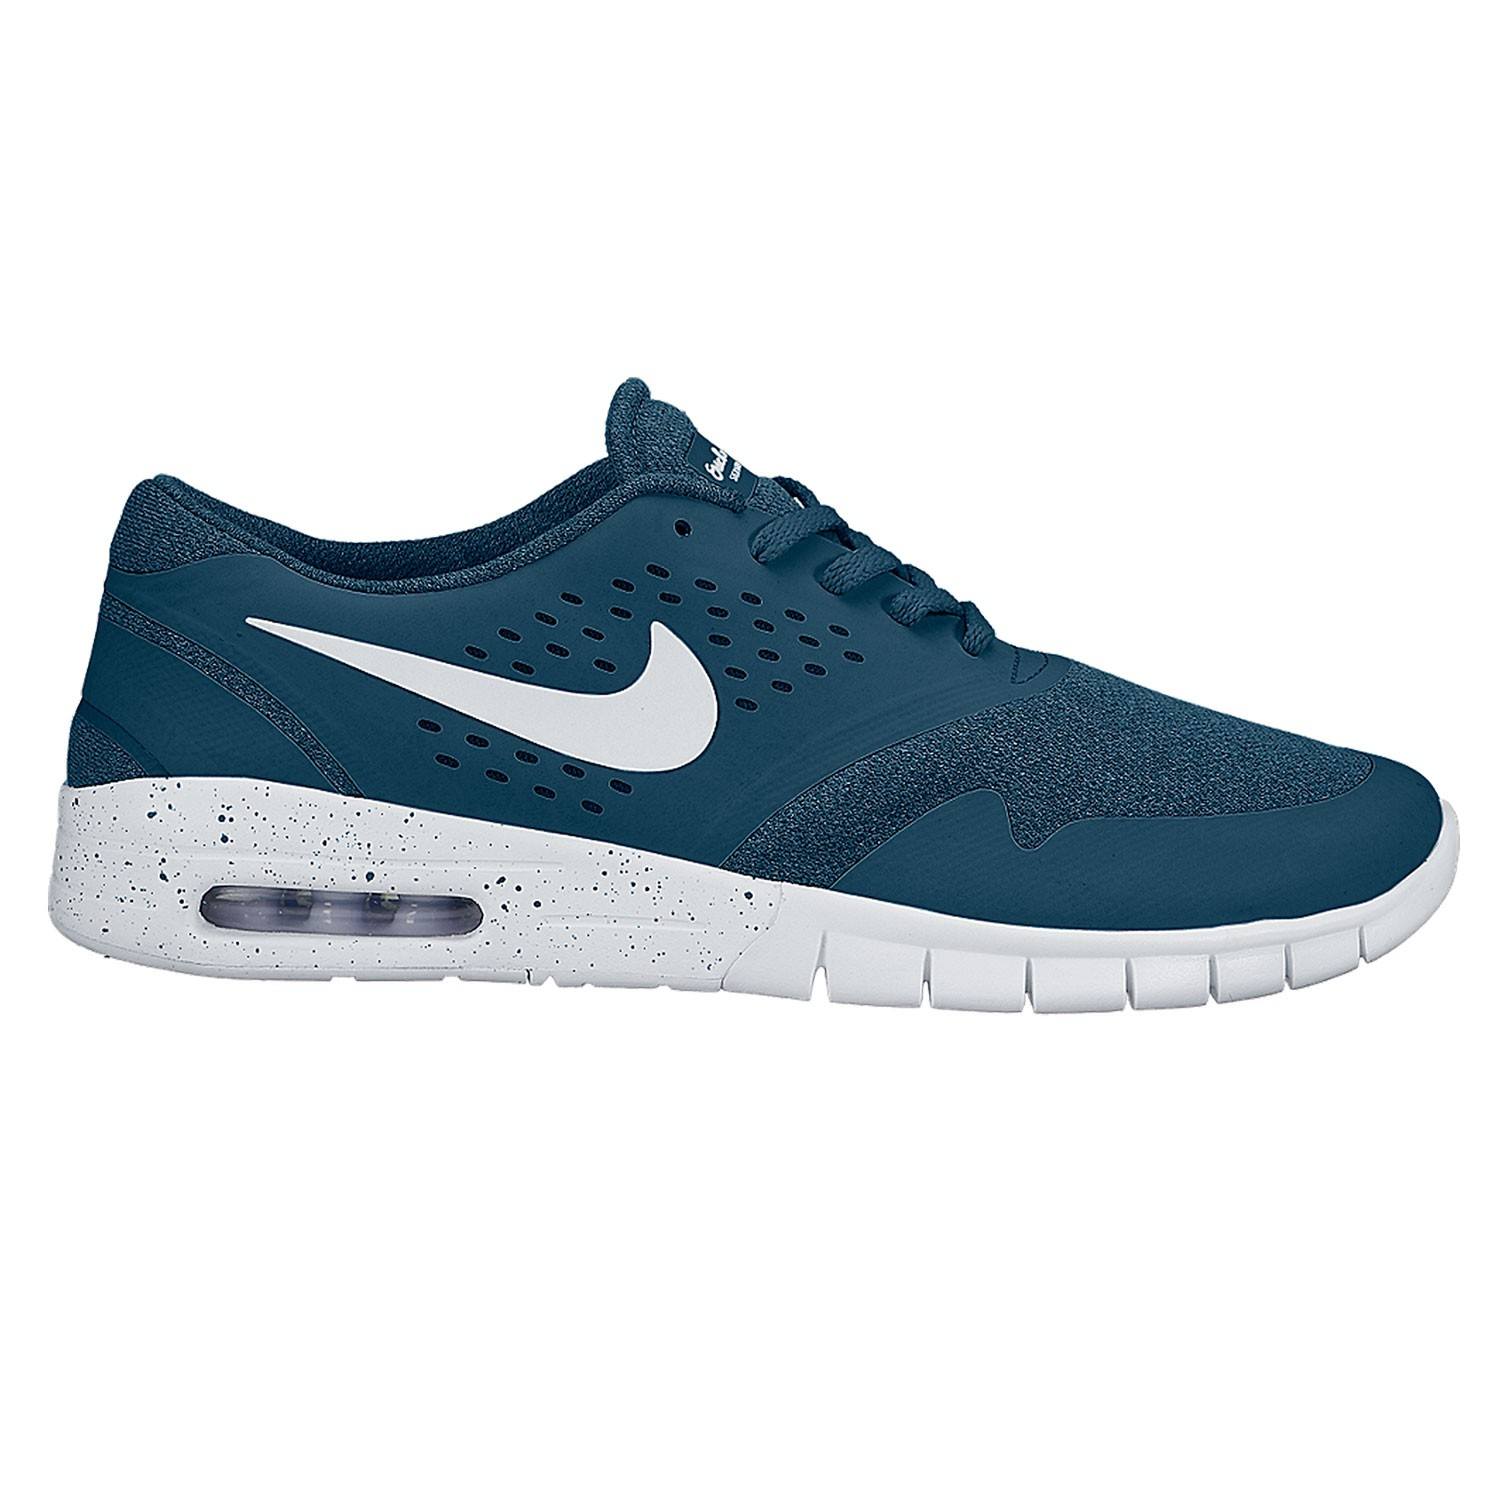 Nike SB Eric Koston 2 Max blue force/white | Snowboard Zezula